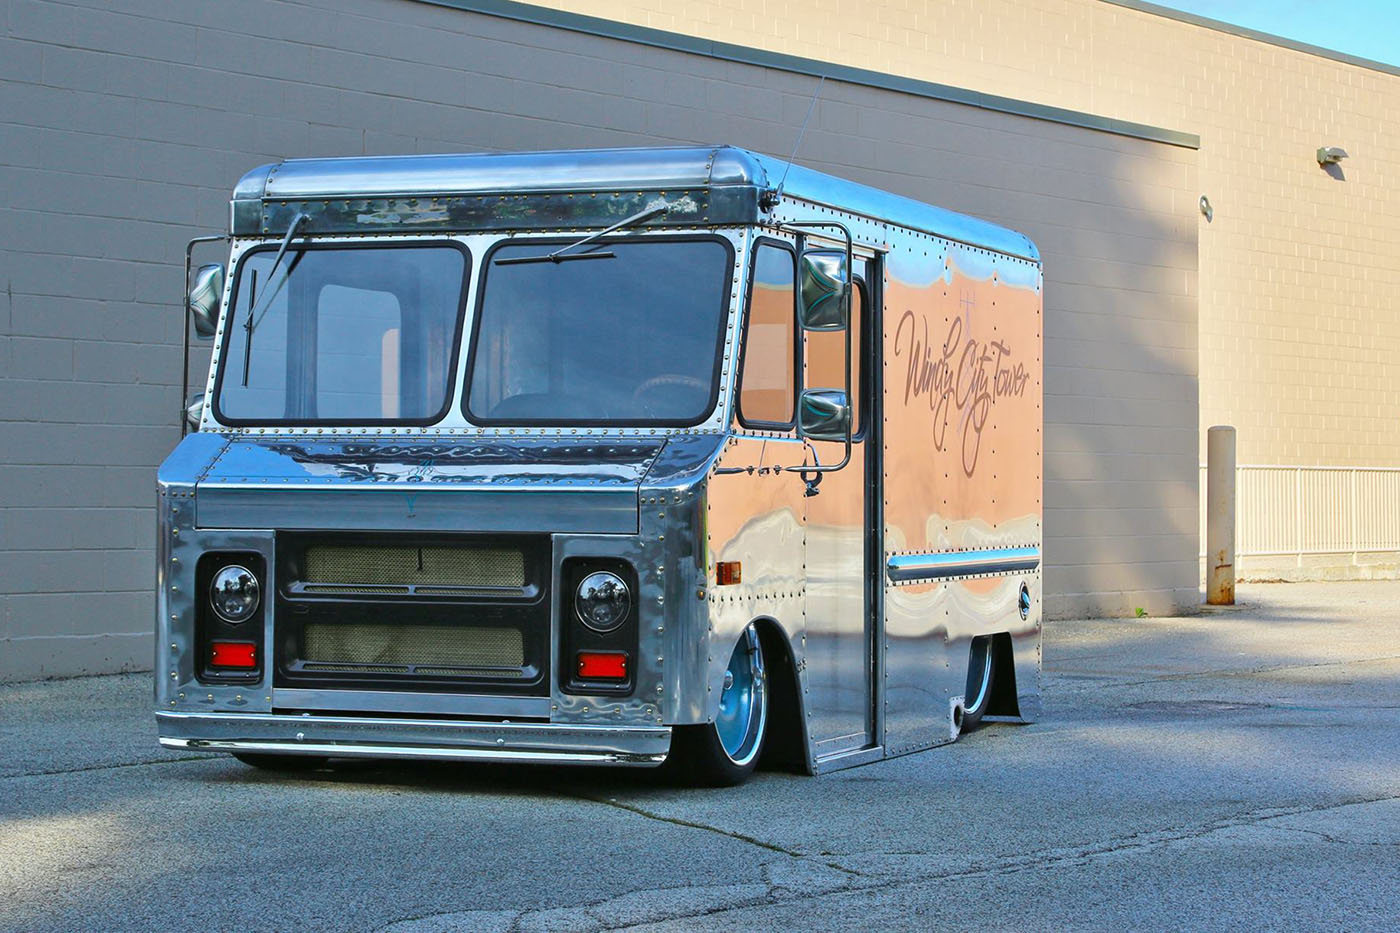 1970 chevy p10 van with a lsx engine swap depot. Black Bedroom Furniture Sets. Home Design Ideas